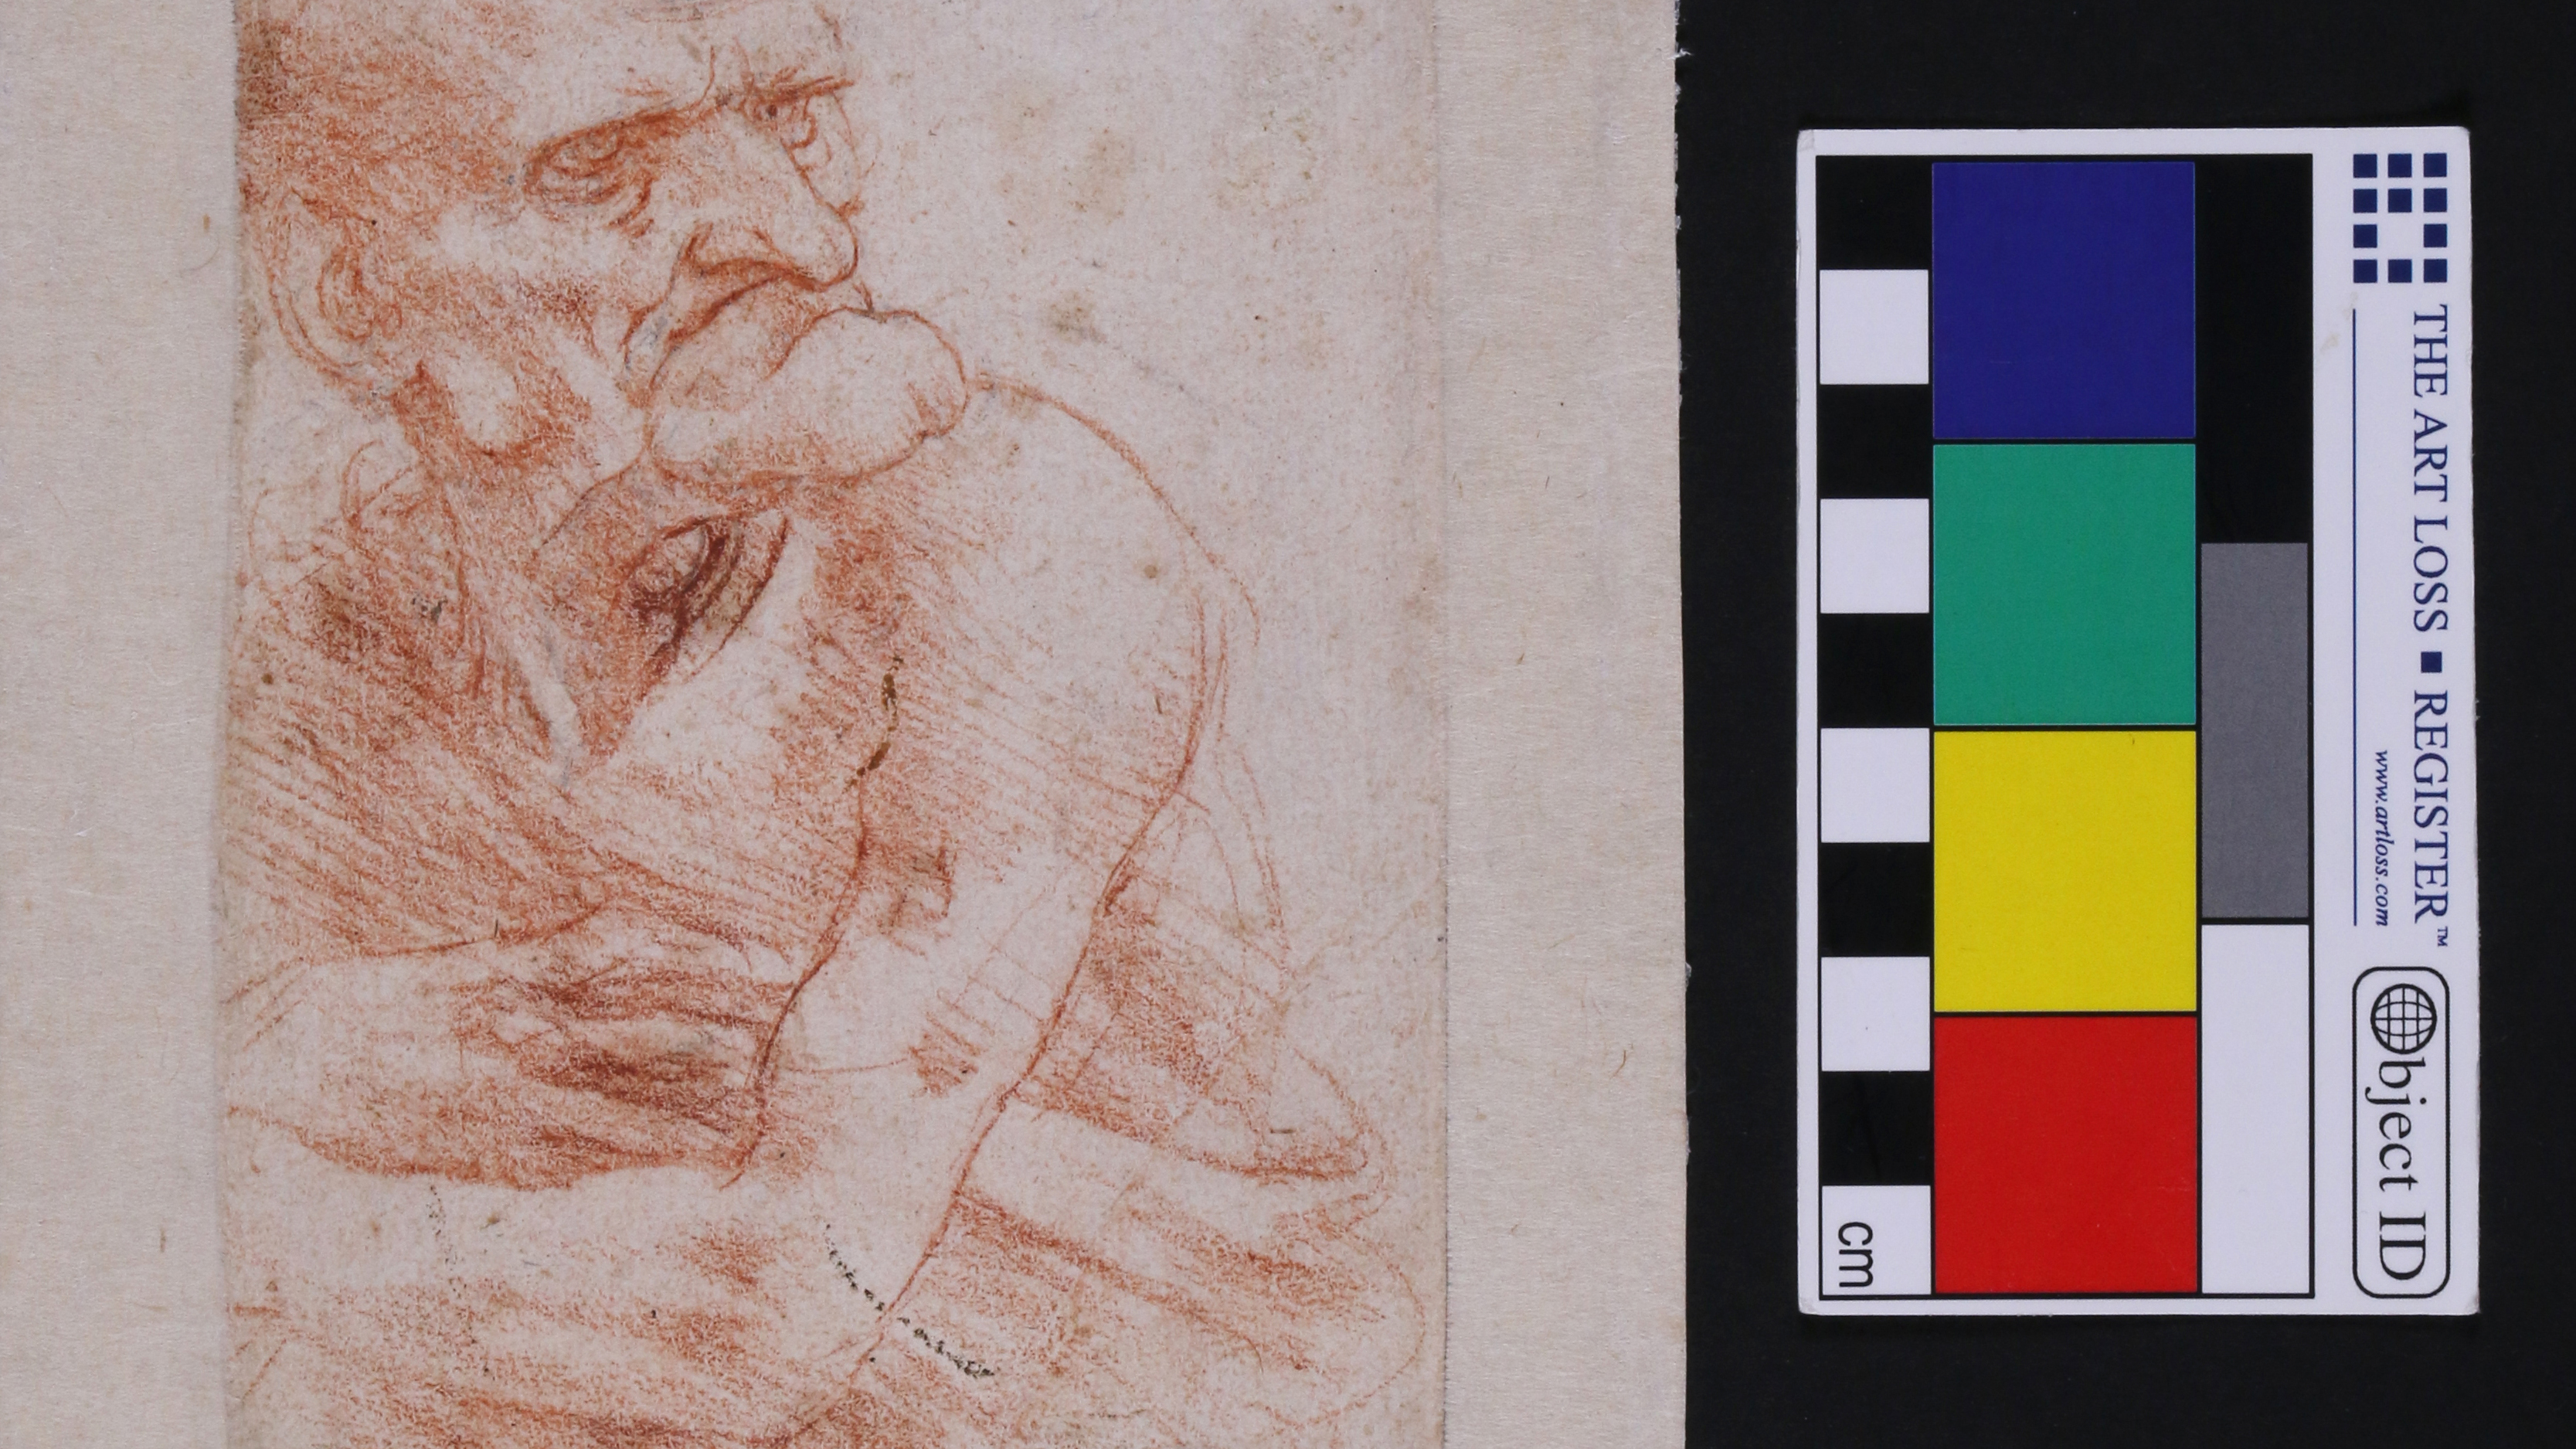 Hidden world of bacteria and fungi discovered on Leonardo da Vinci's drawings thumbnail